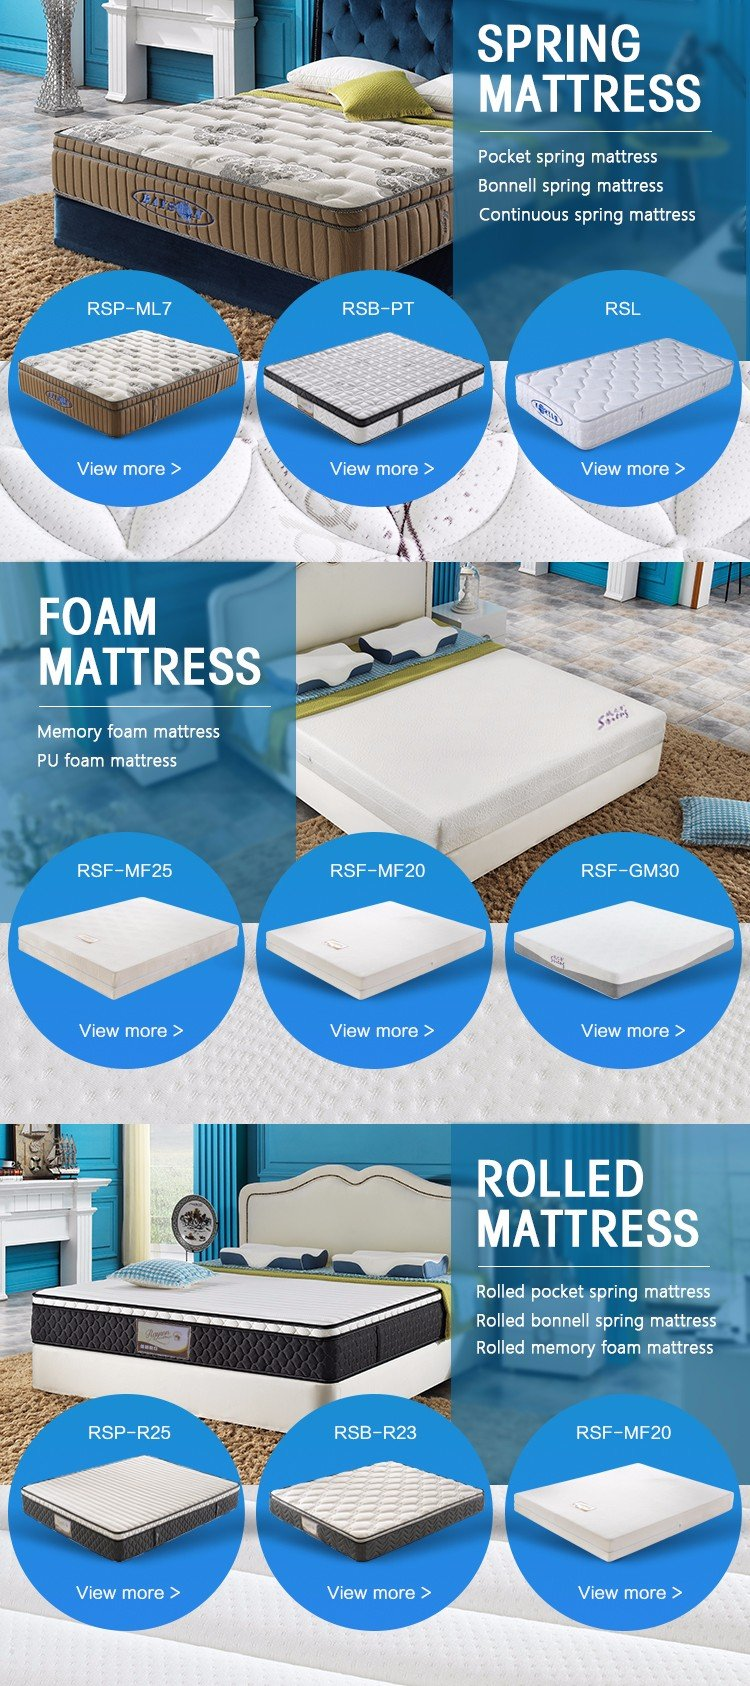 Rayson Mattress super icon mattress manufacturers-7